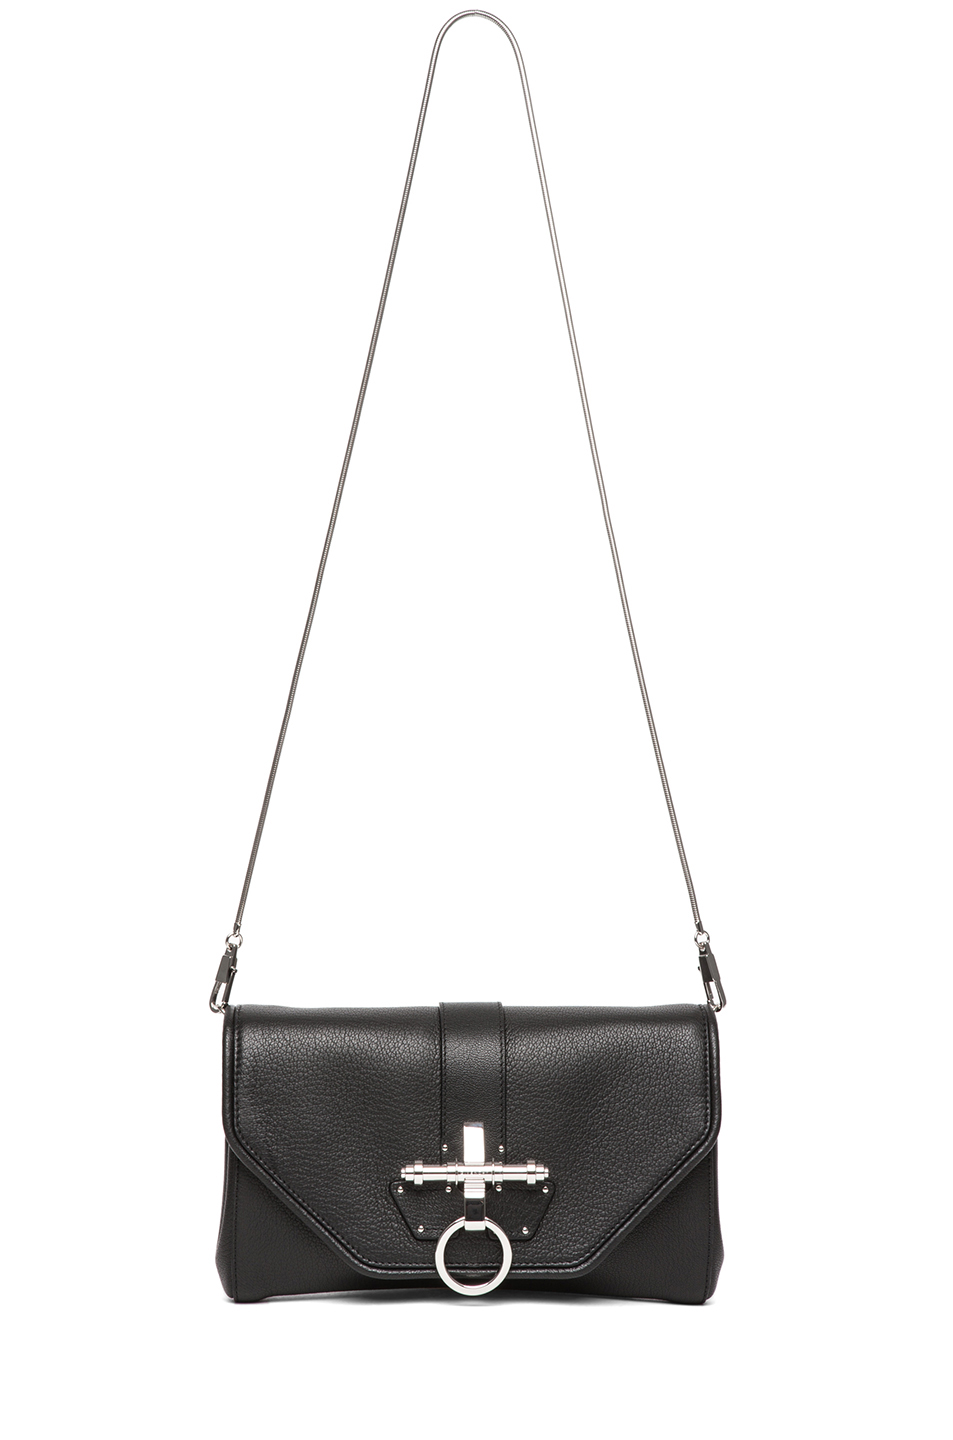 GIVENCHY|Obsedia with Snake Chain in Black